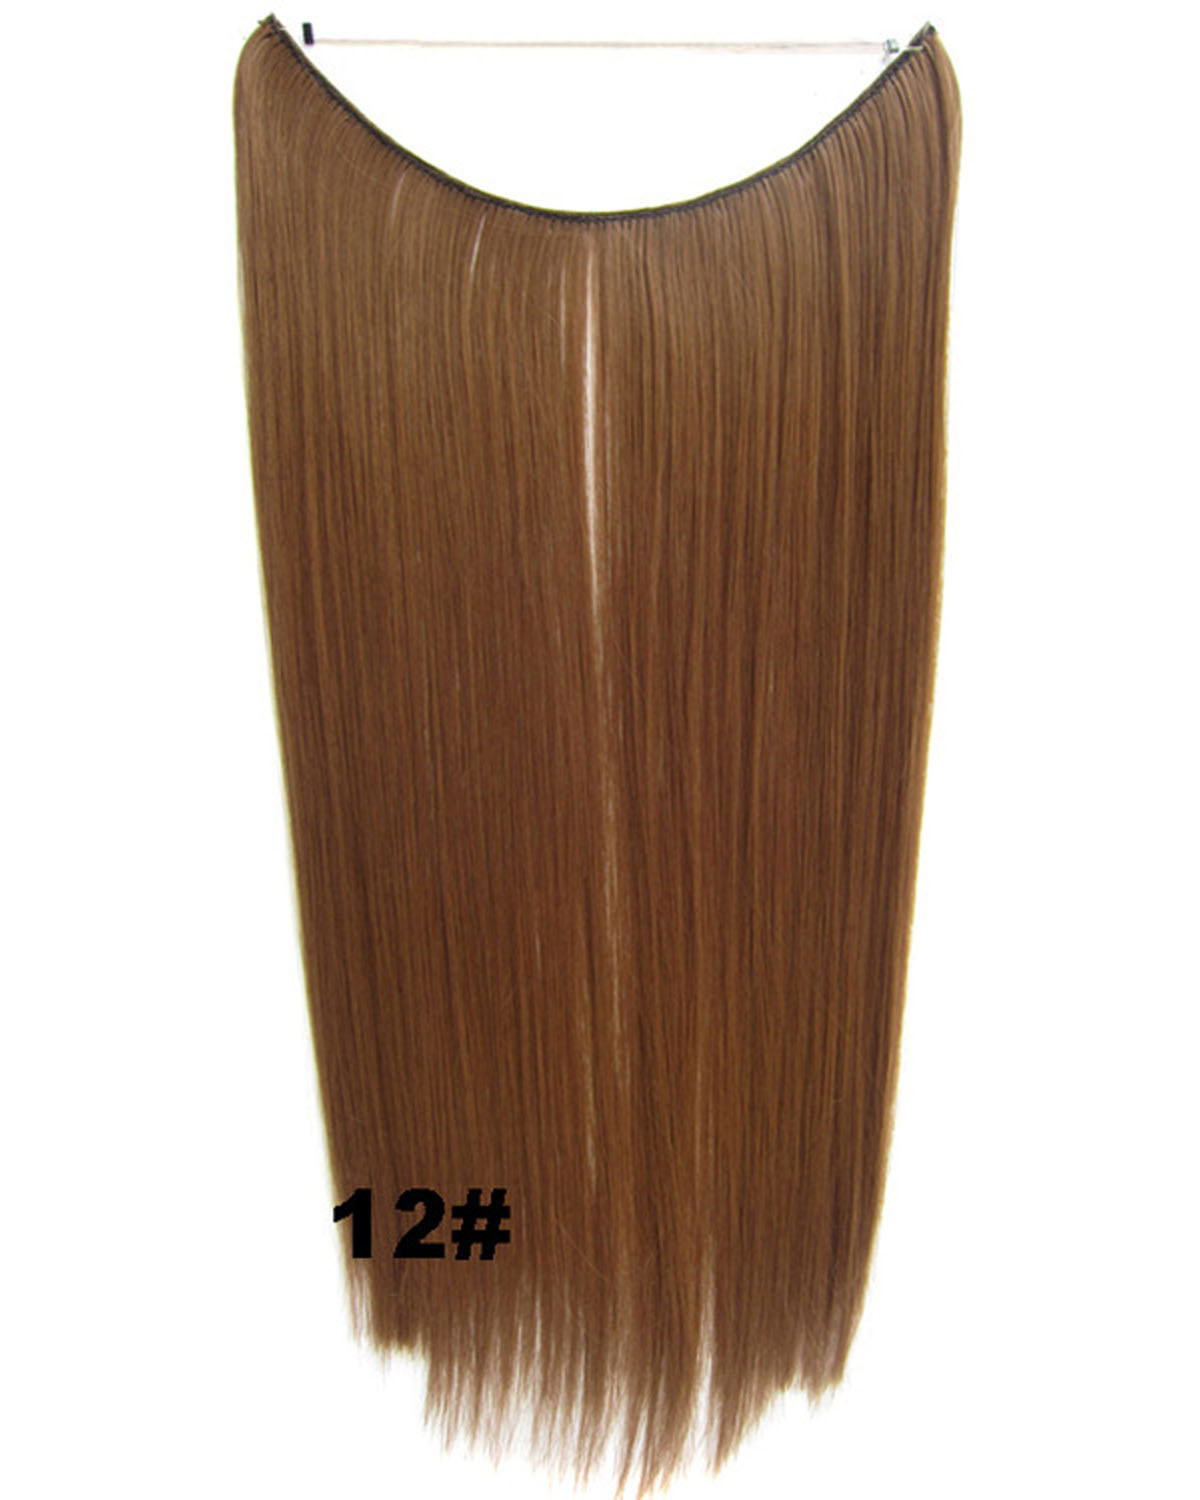 22 Inch Lady Clean and Neat Straight long One Piece Miracle Wire Flip in Synthetic Hair Extension 12#